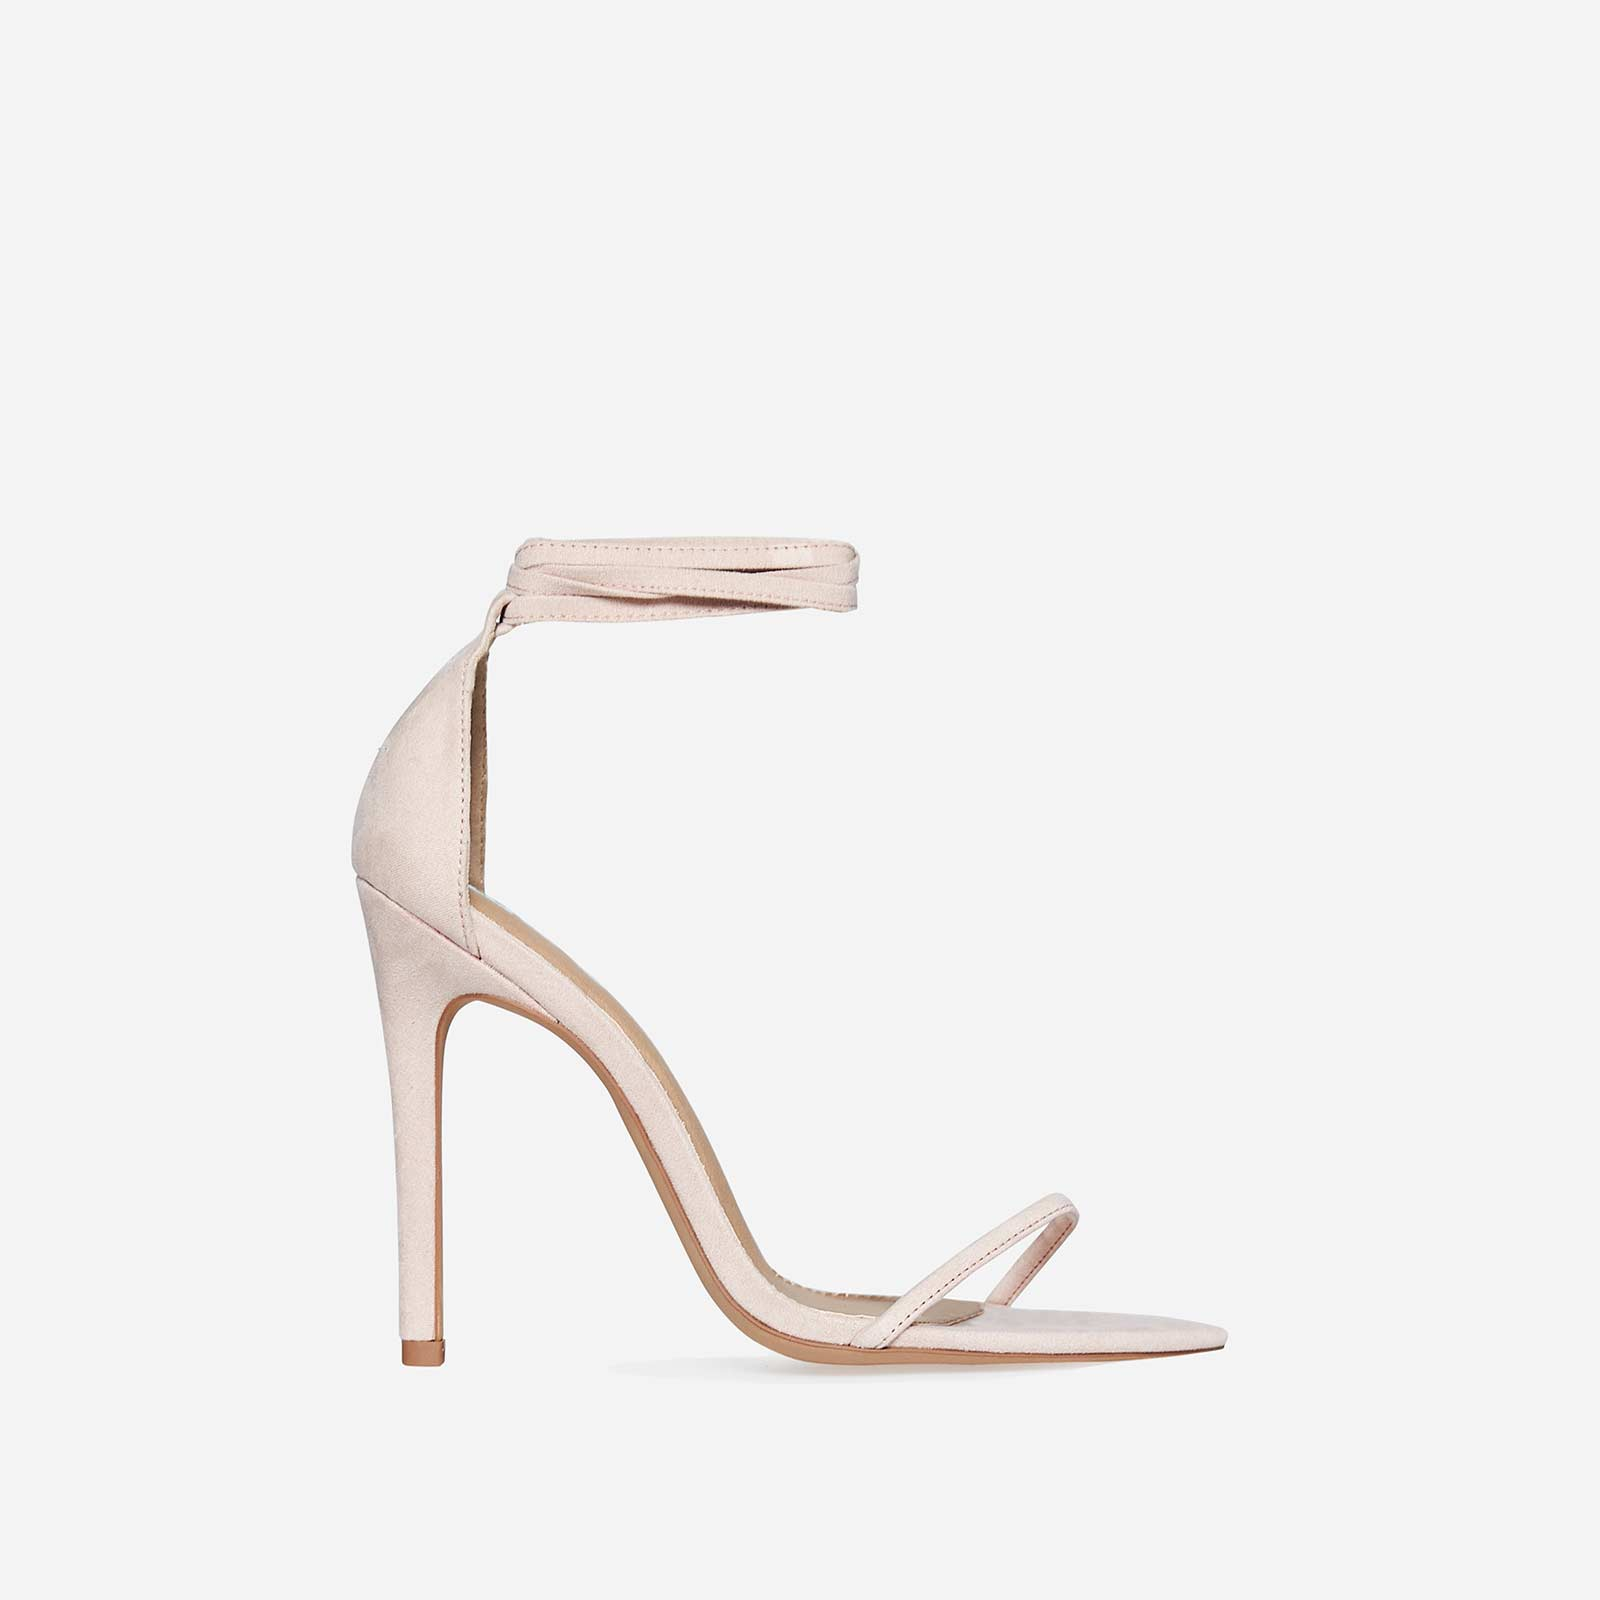 Ralley Lace Up Pointed Barely There Heel In Nude Faux Suede